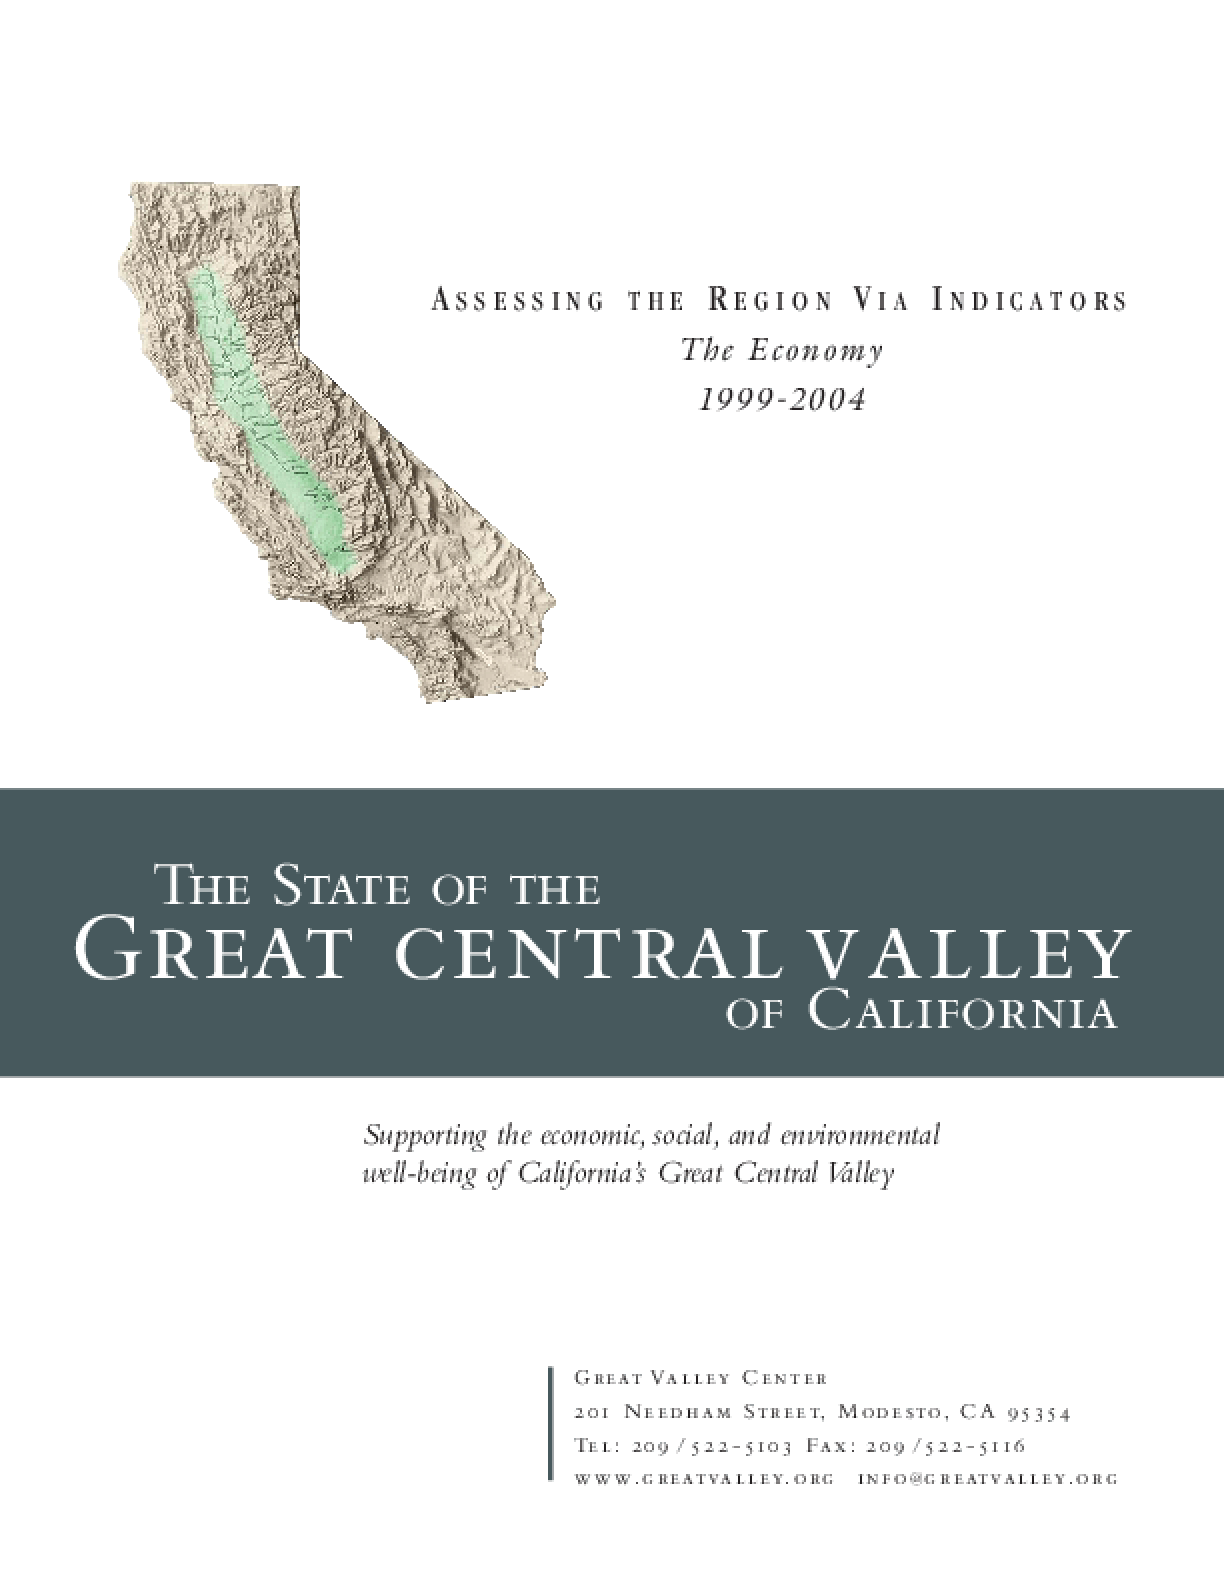 The State of the Great Central Valley -- The Economy (1999-2004)